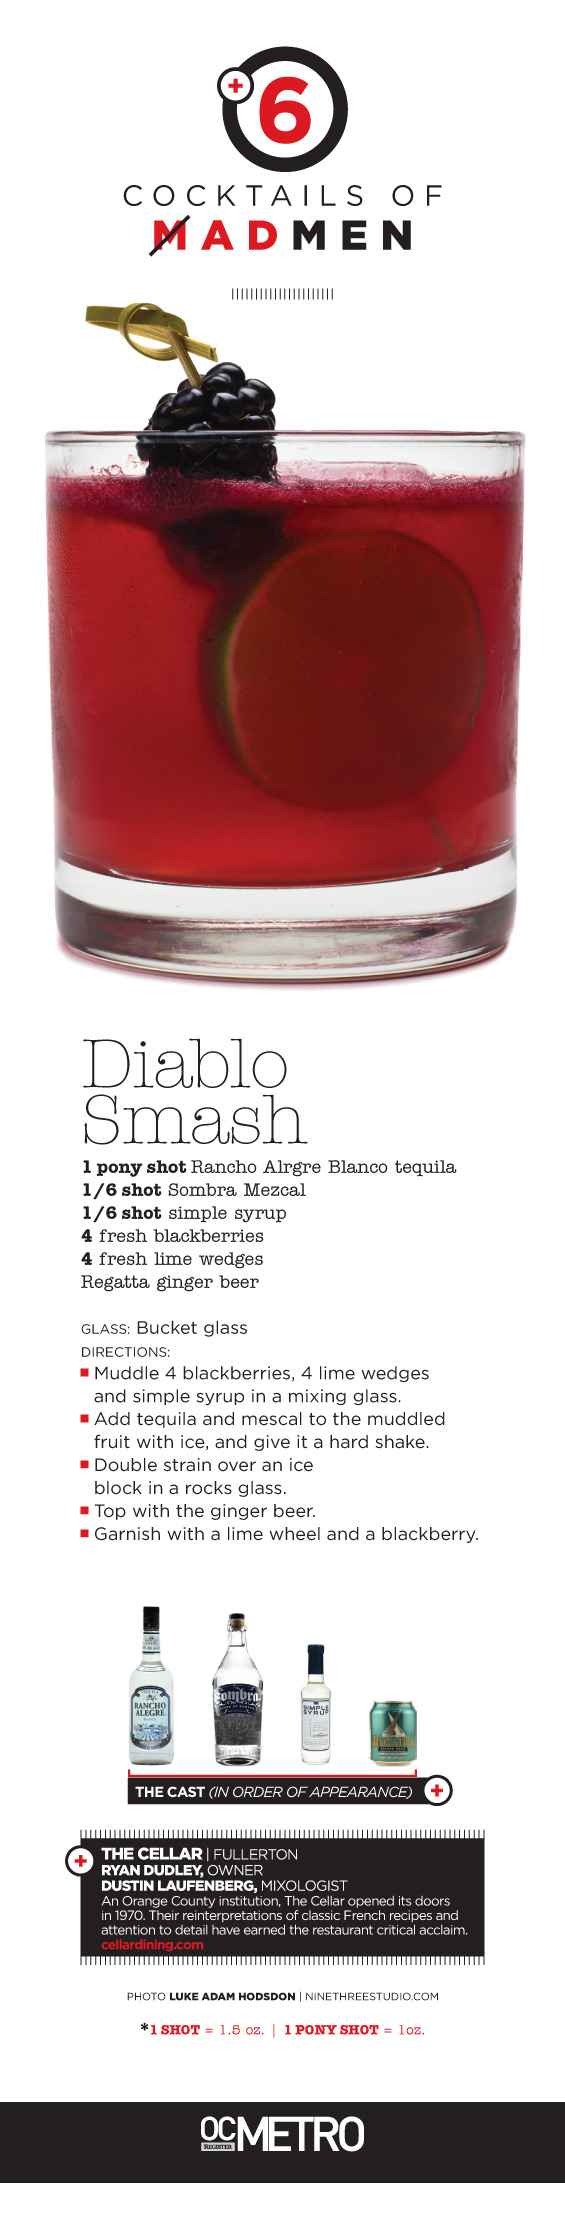 Diablo Smash cocktail recipe made with tequila, mezcal, simple syrup, blackberries, lime and ginger beer by Ryan Dudley at The Cellar in Fullerton. OC Register Metro #magazine Mad Men inspired cover story | #photo by Luke Adam Hodsdon